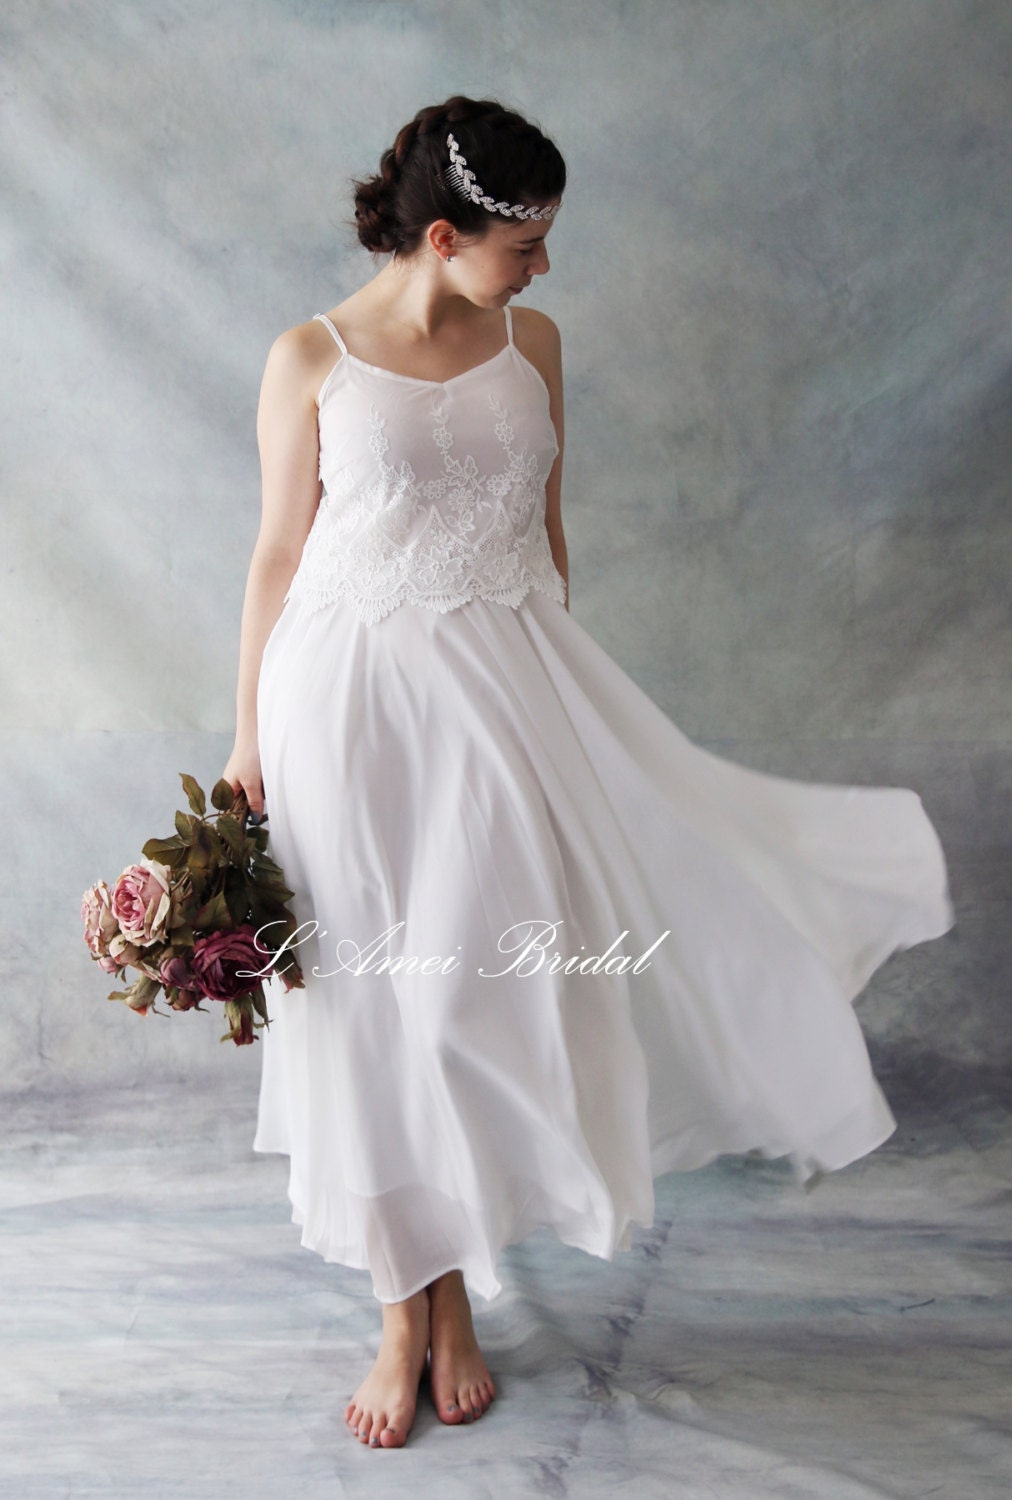 Short And Simple Ivory White Lace Wedding Dress Perfect For